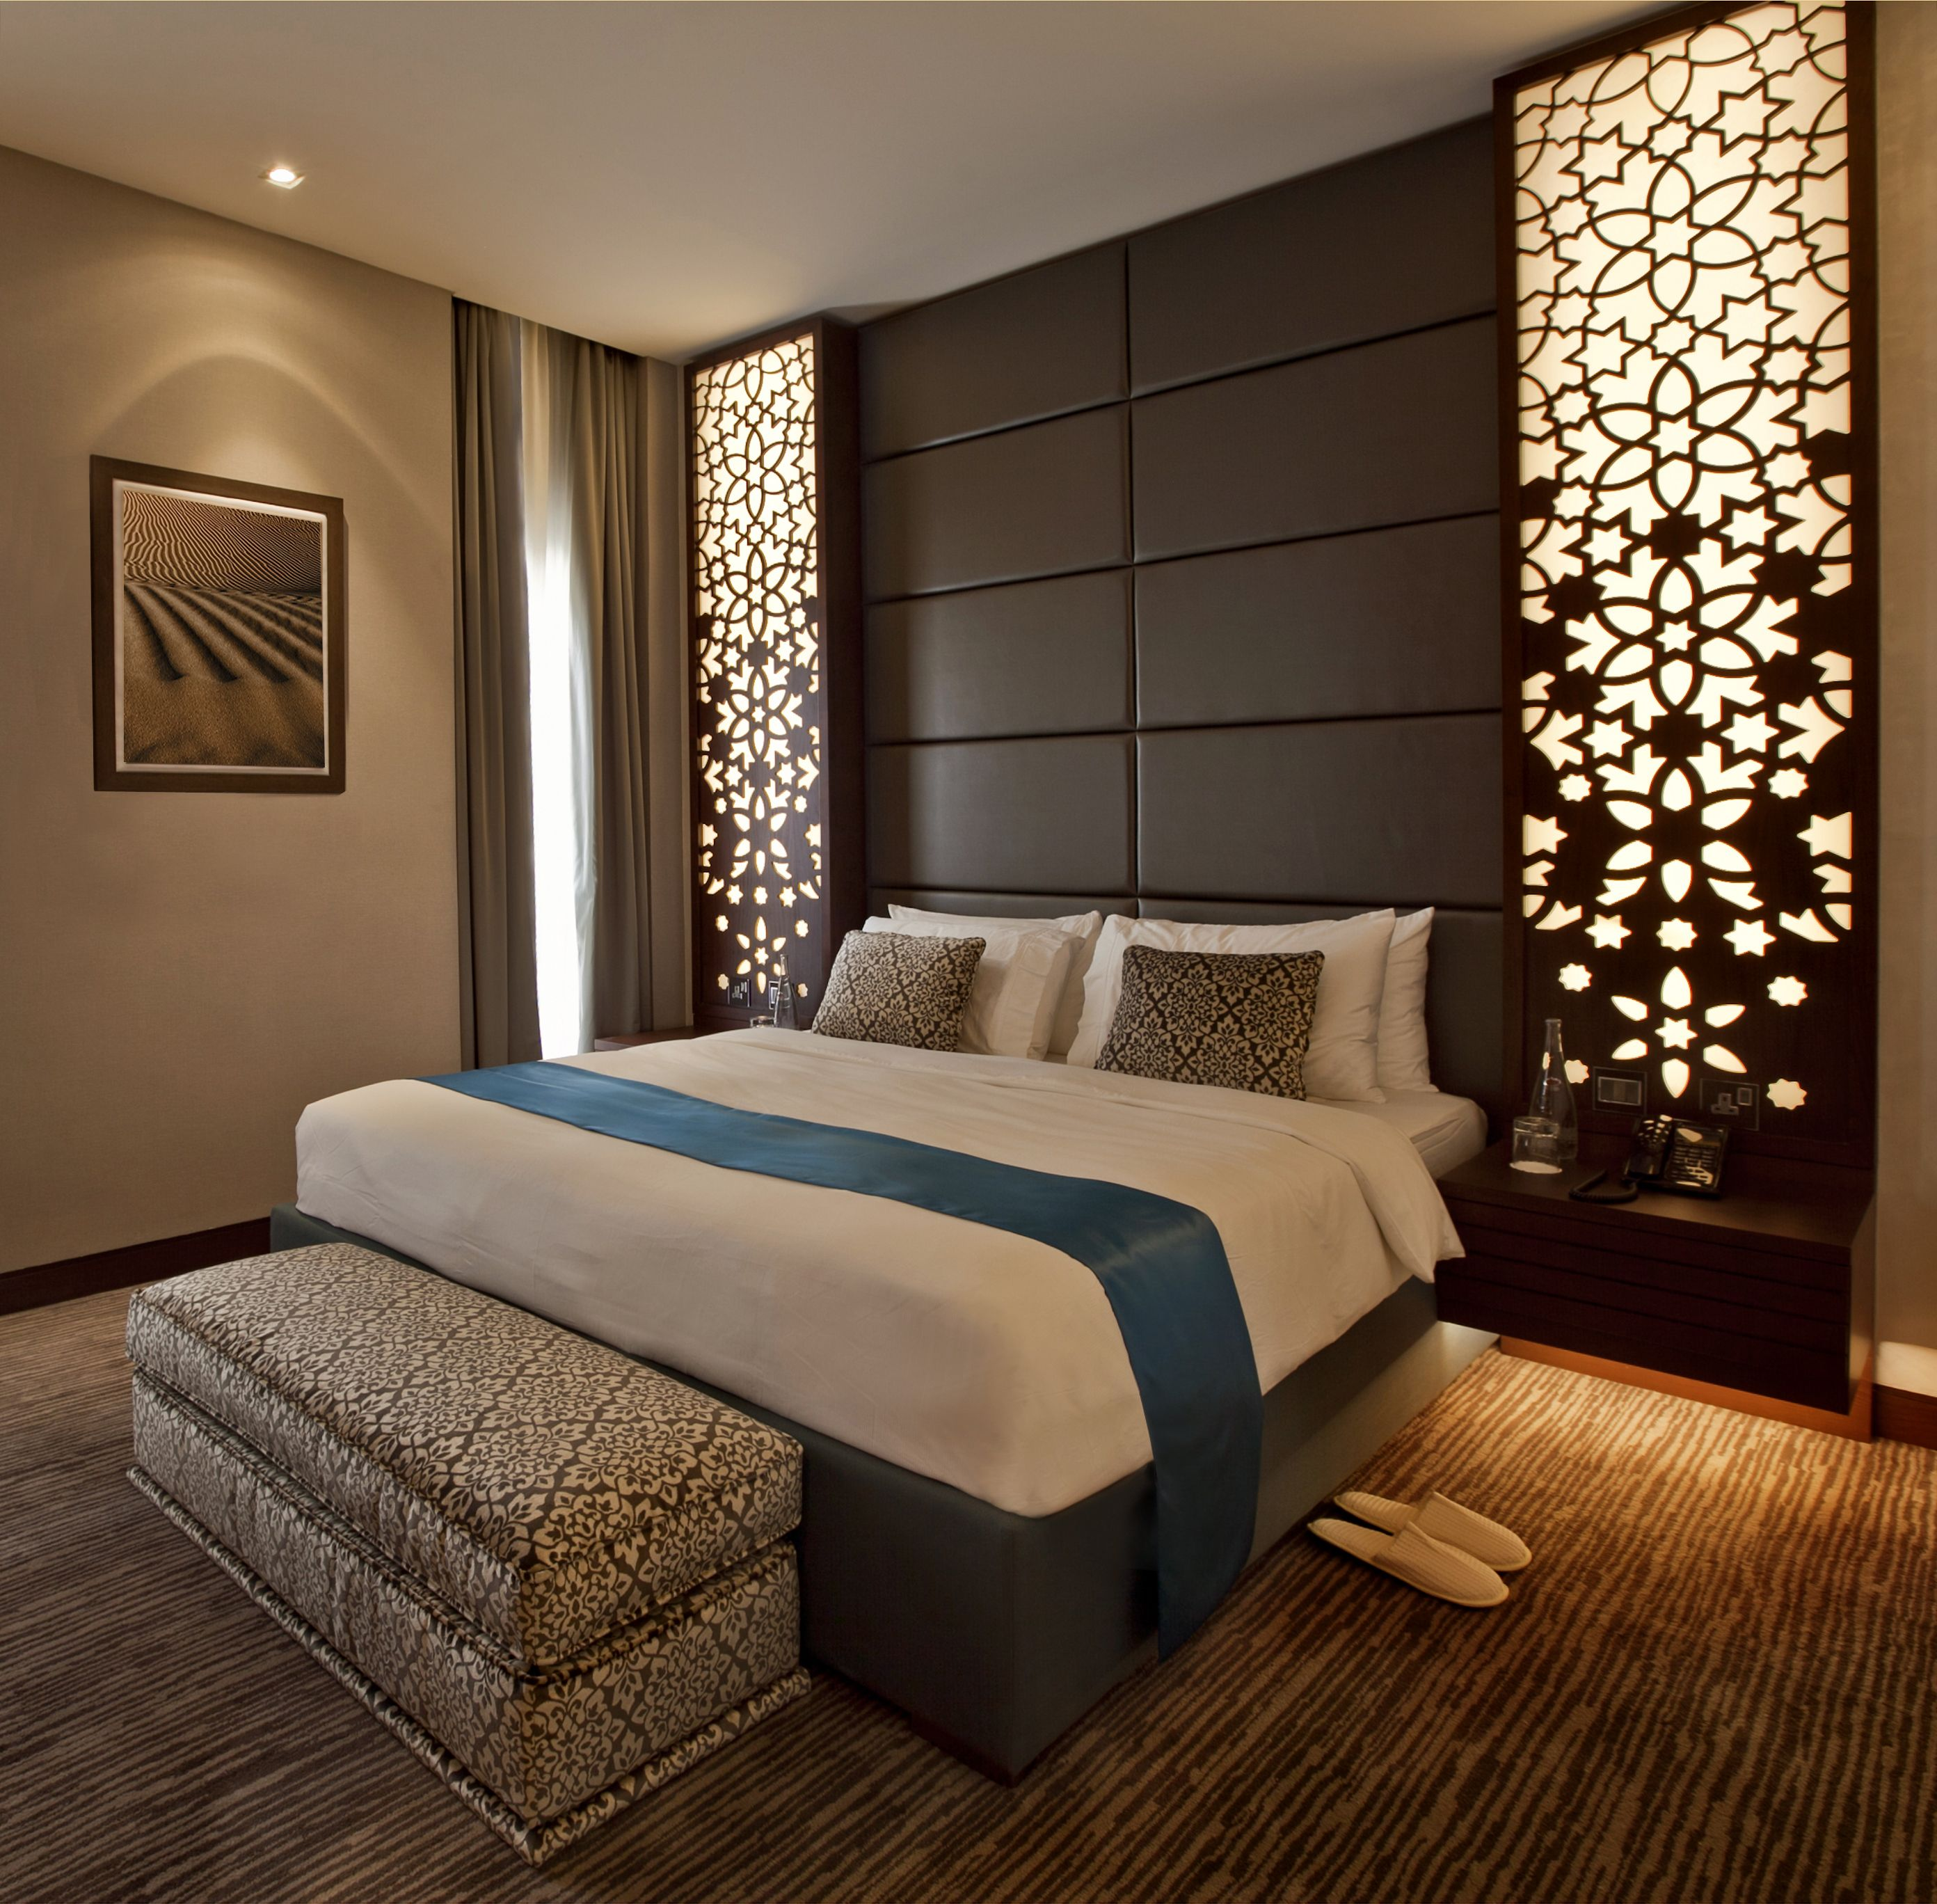 Modern Interior Design Review: Each One Of Our 45 Beautiful Rooms & Suites Boasts